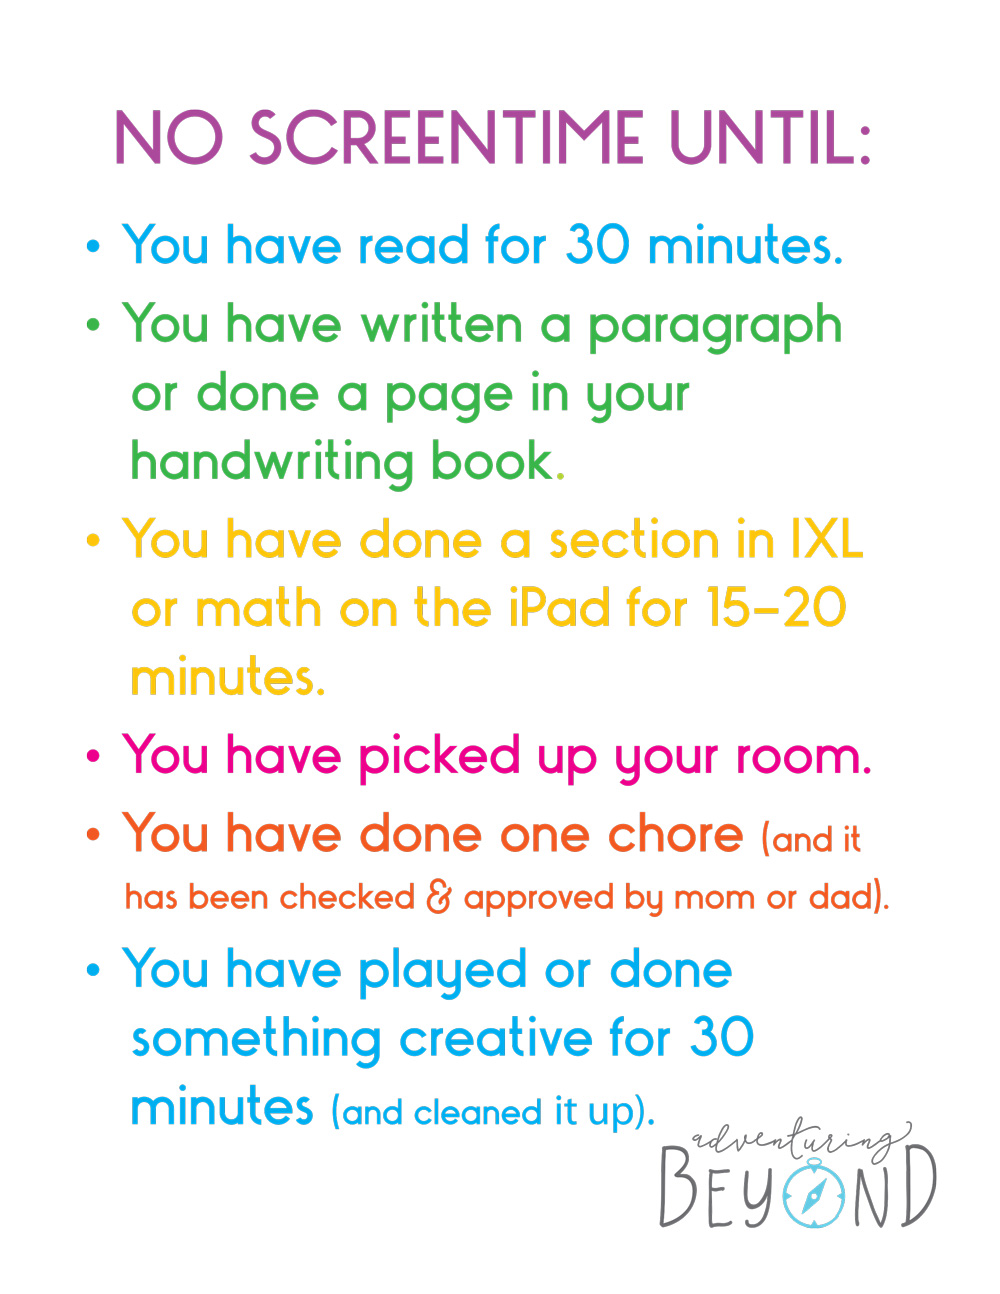 photograph regarding Screen Time Rules Printable known as Adventuring Past - Site 3 of 3 - Adventuring past